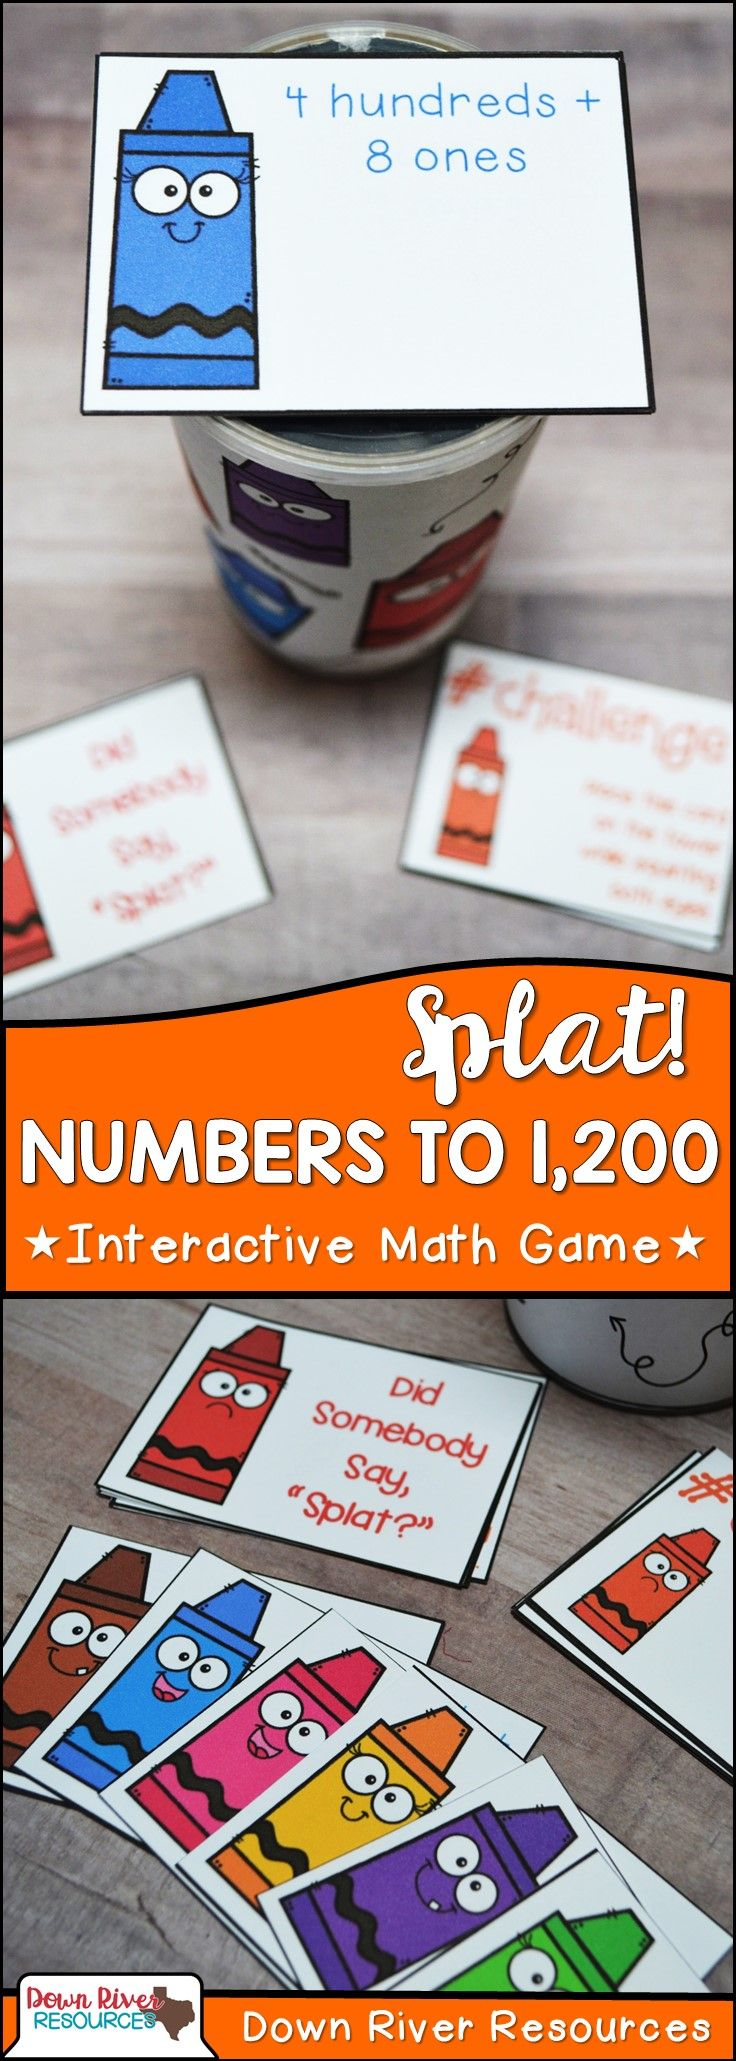 Compose and Decompose Numbers up to 1,200 | Sum of Thousands, Hundreds, Tens, and Ones | Standard and Expanded Form to Represent Numbers up to 1,200 | Second Grade Math TEKS | Second Grade Math Centers | Second Grade Math Stations | Second Grade Math Games